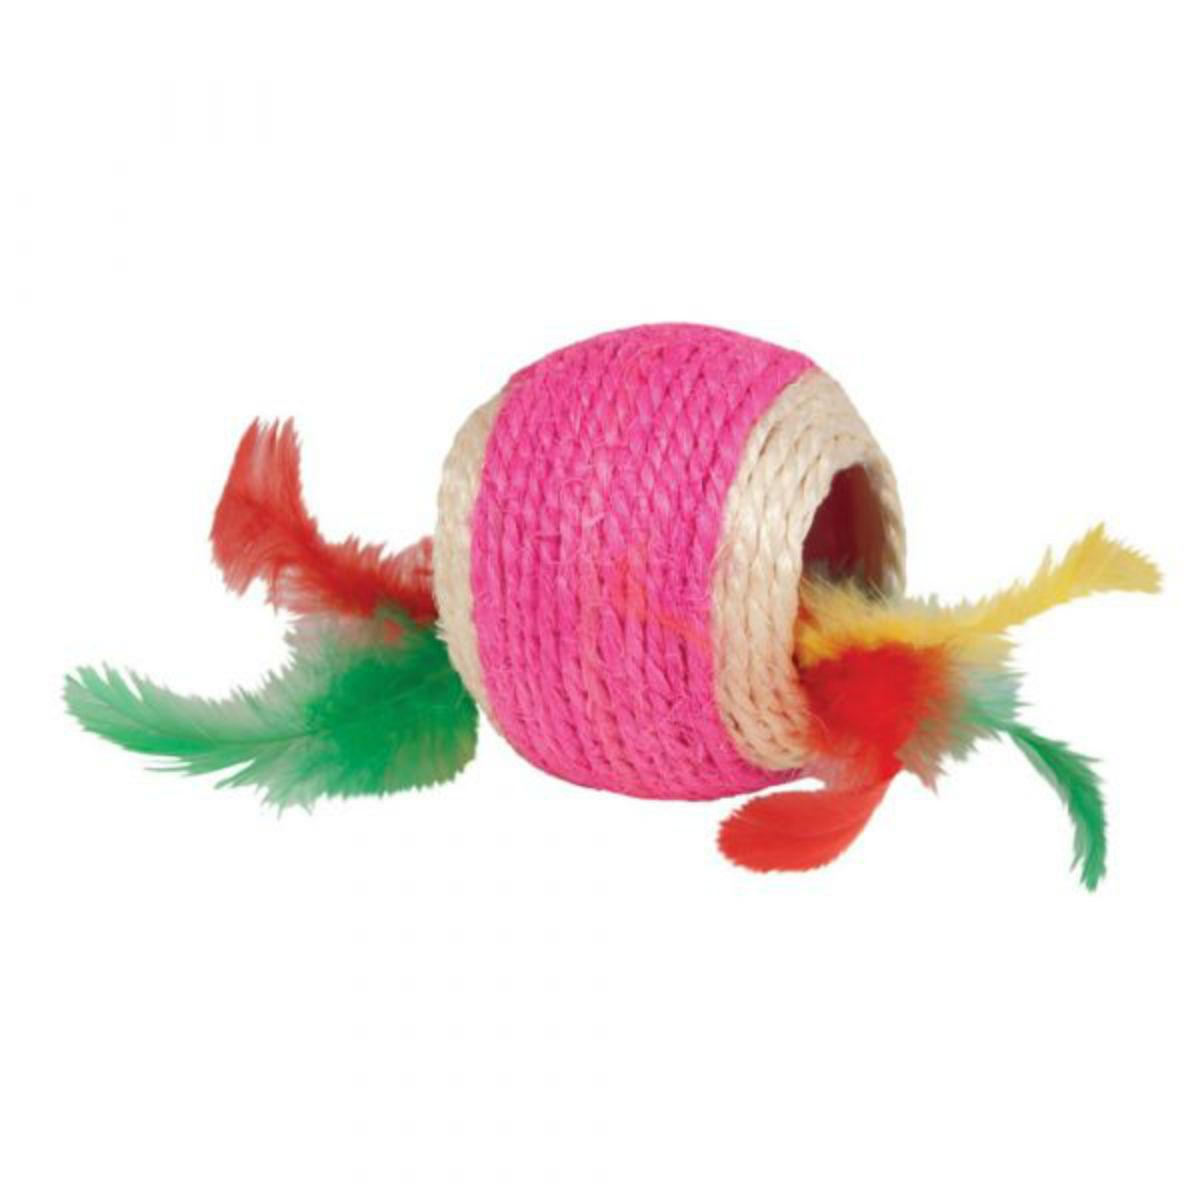 Kylie's Brights Jute Ball with Feathers Cat Toy